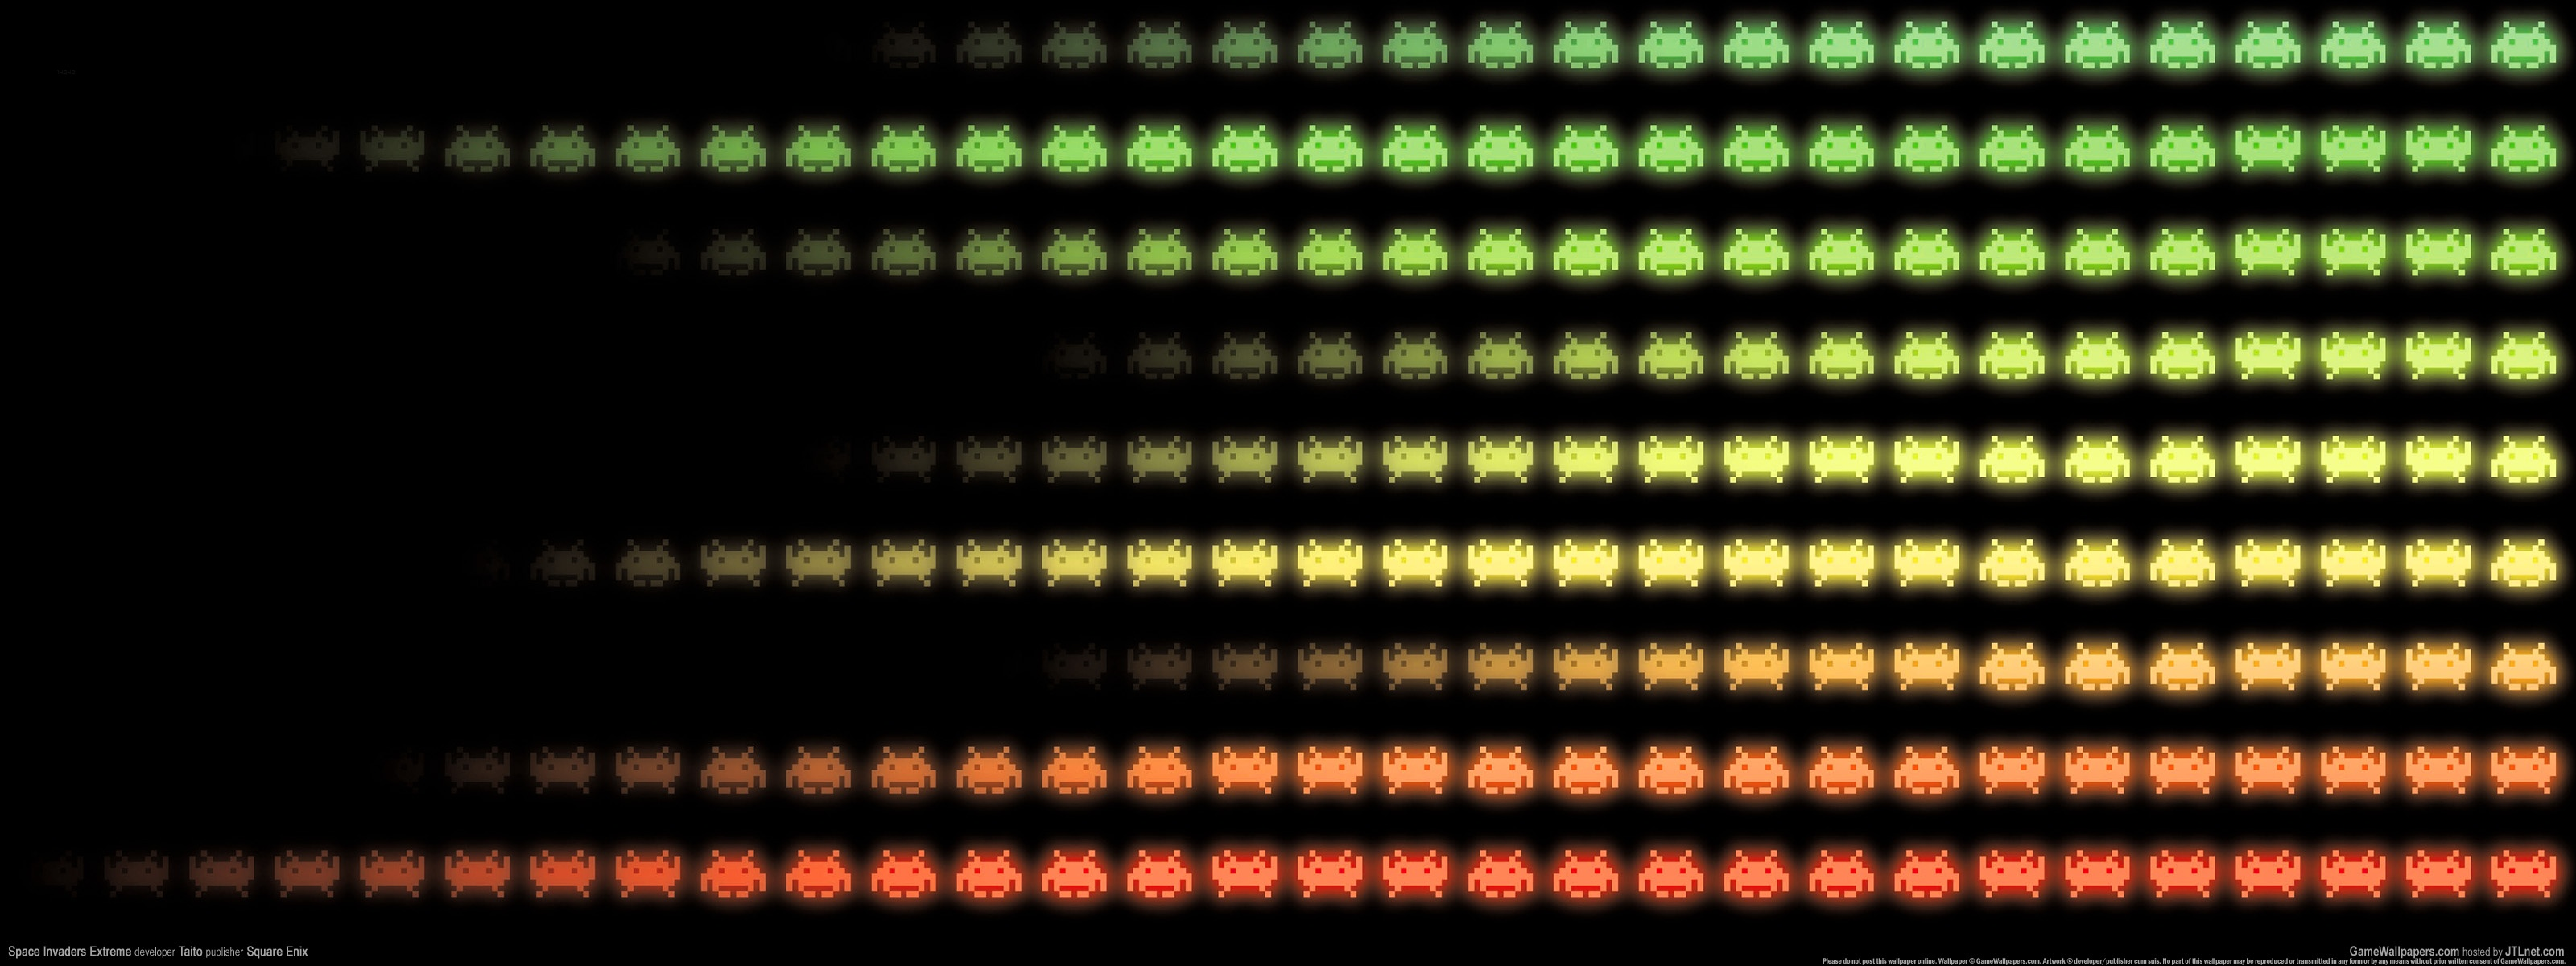 wallpaper_space_invaders_extreme_02_3200x1200.jpg